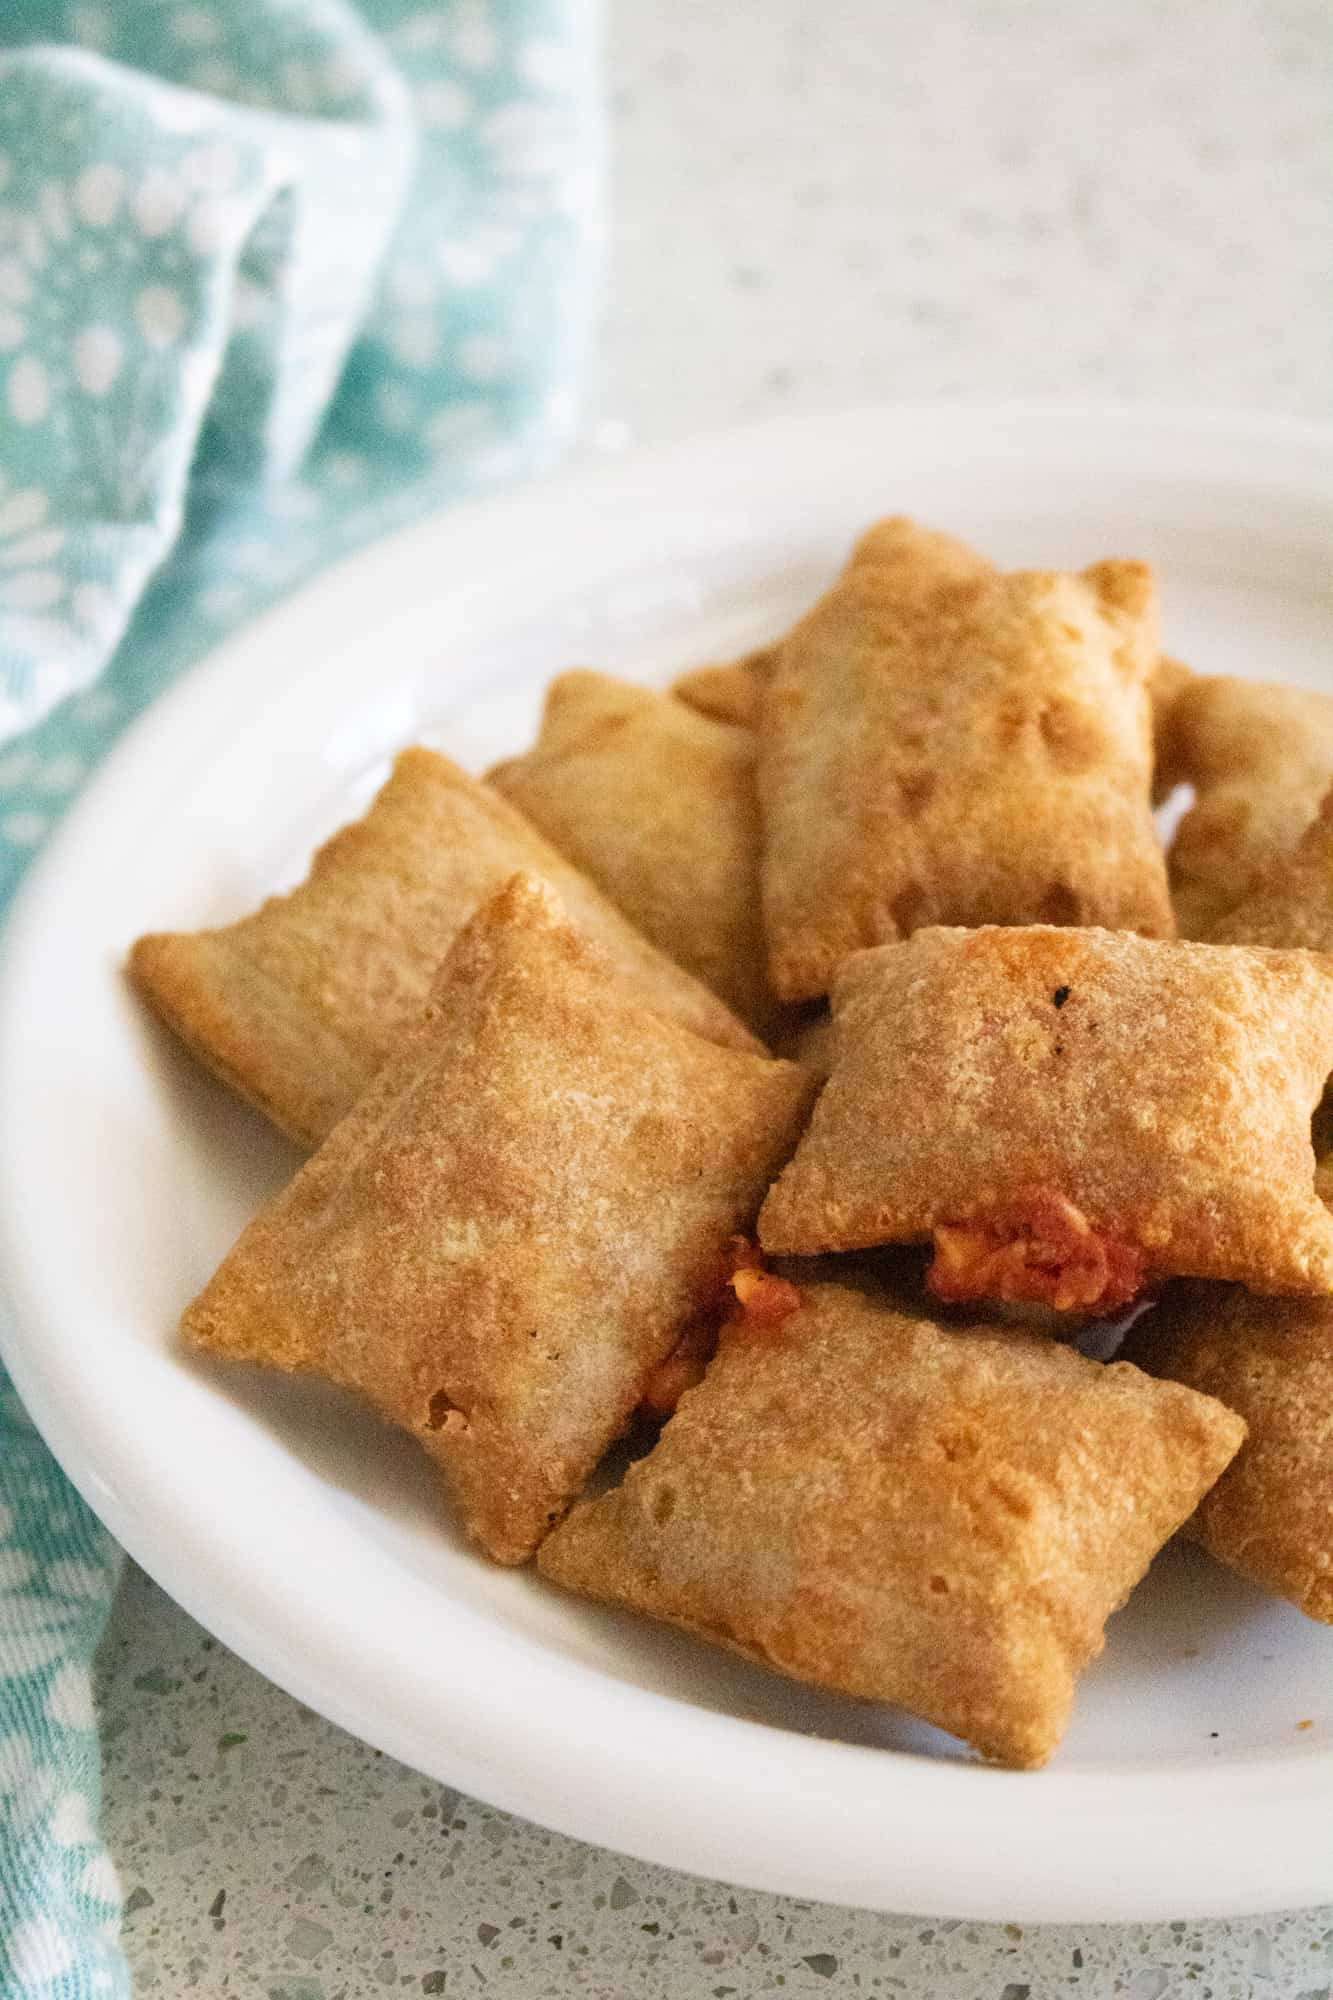 pizza roll on plate